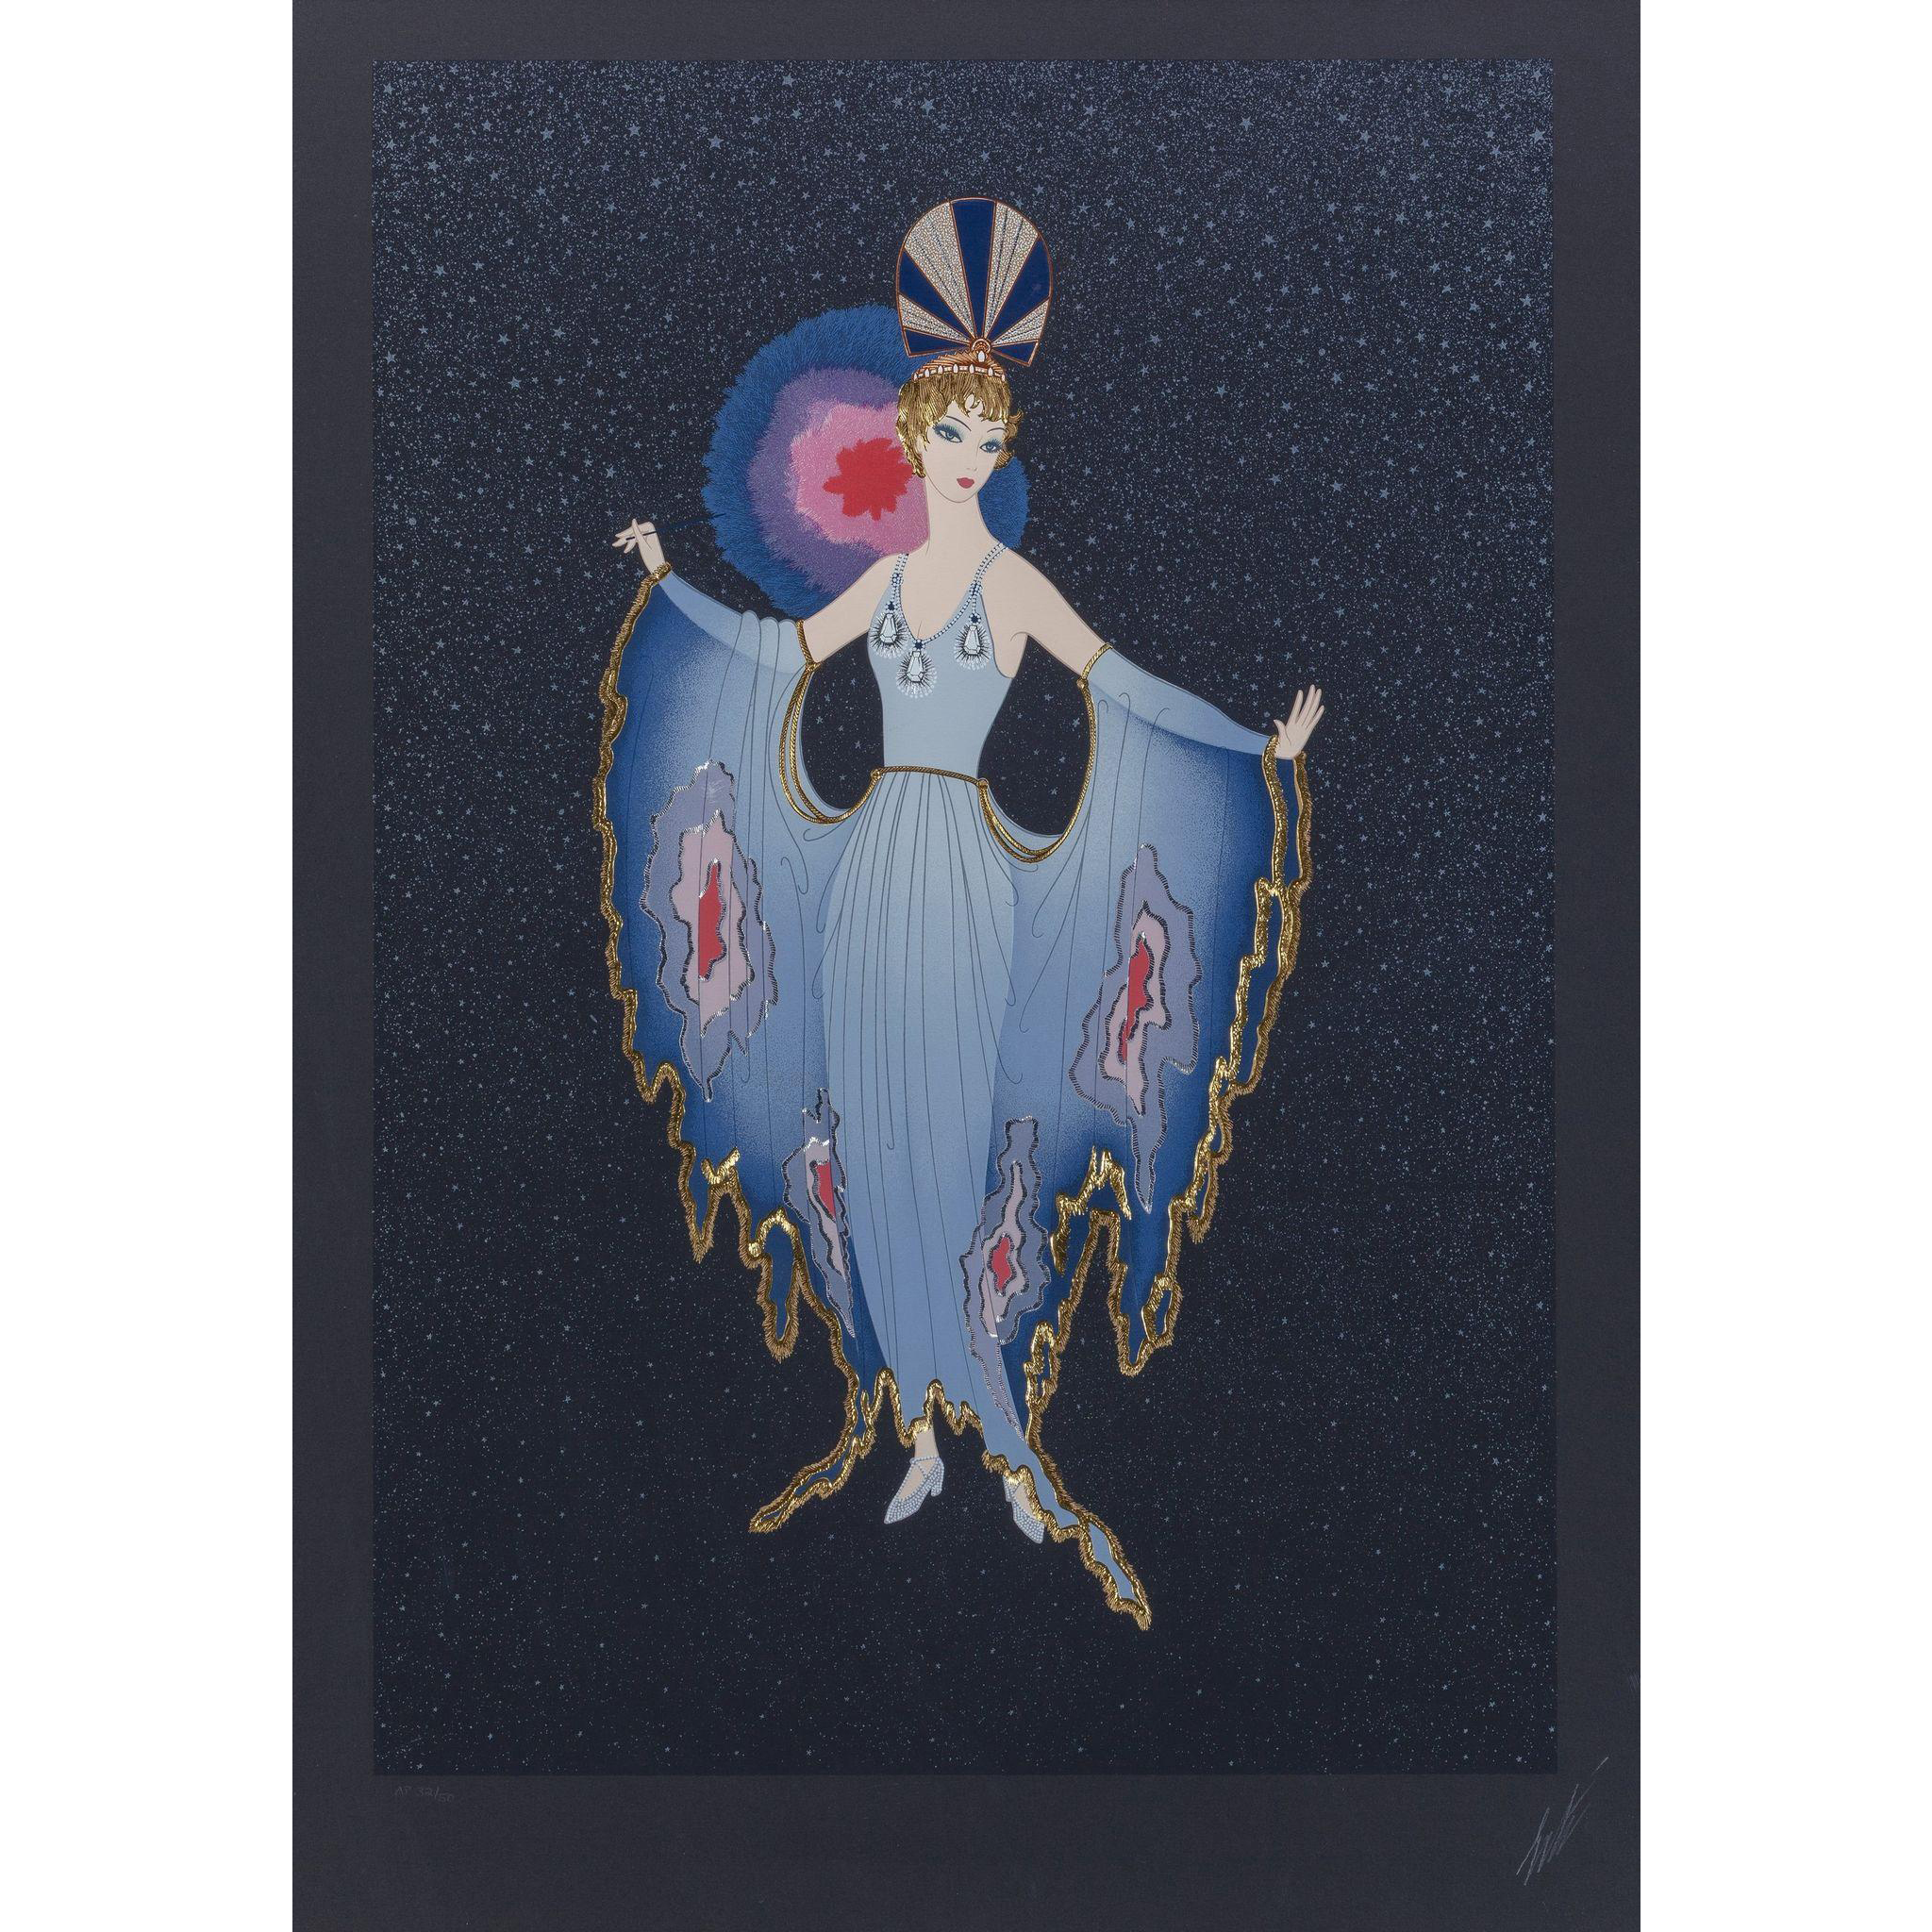 """ERTE (Romain de Tirtoff ) (Russian/French 1892- 1990) Closed Limited Edition, """"Twilight"""" Signed and Numbered, c. 1987, Embossed Screenprint With Foil Stamping."""